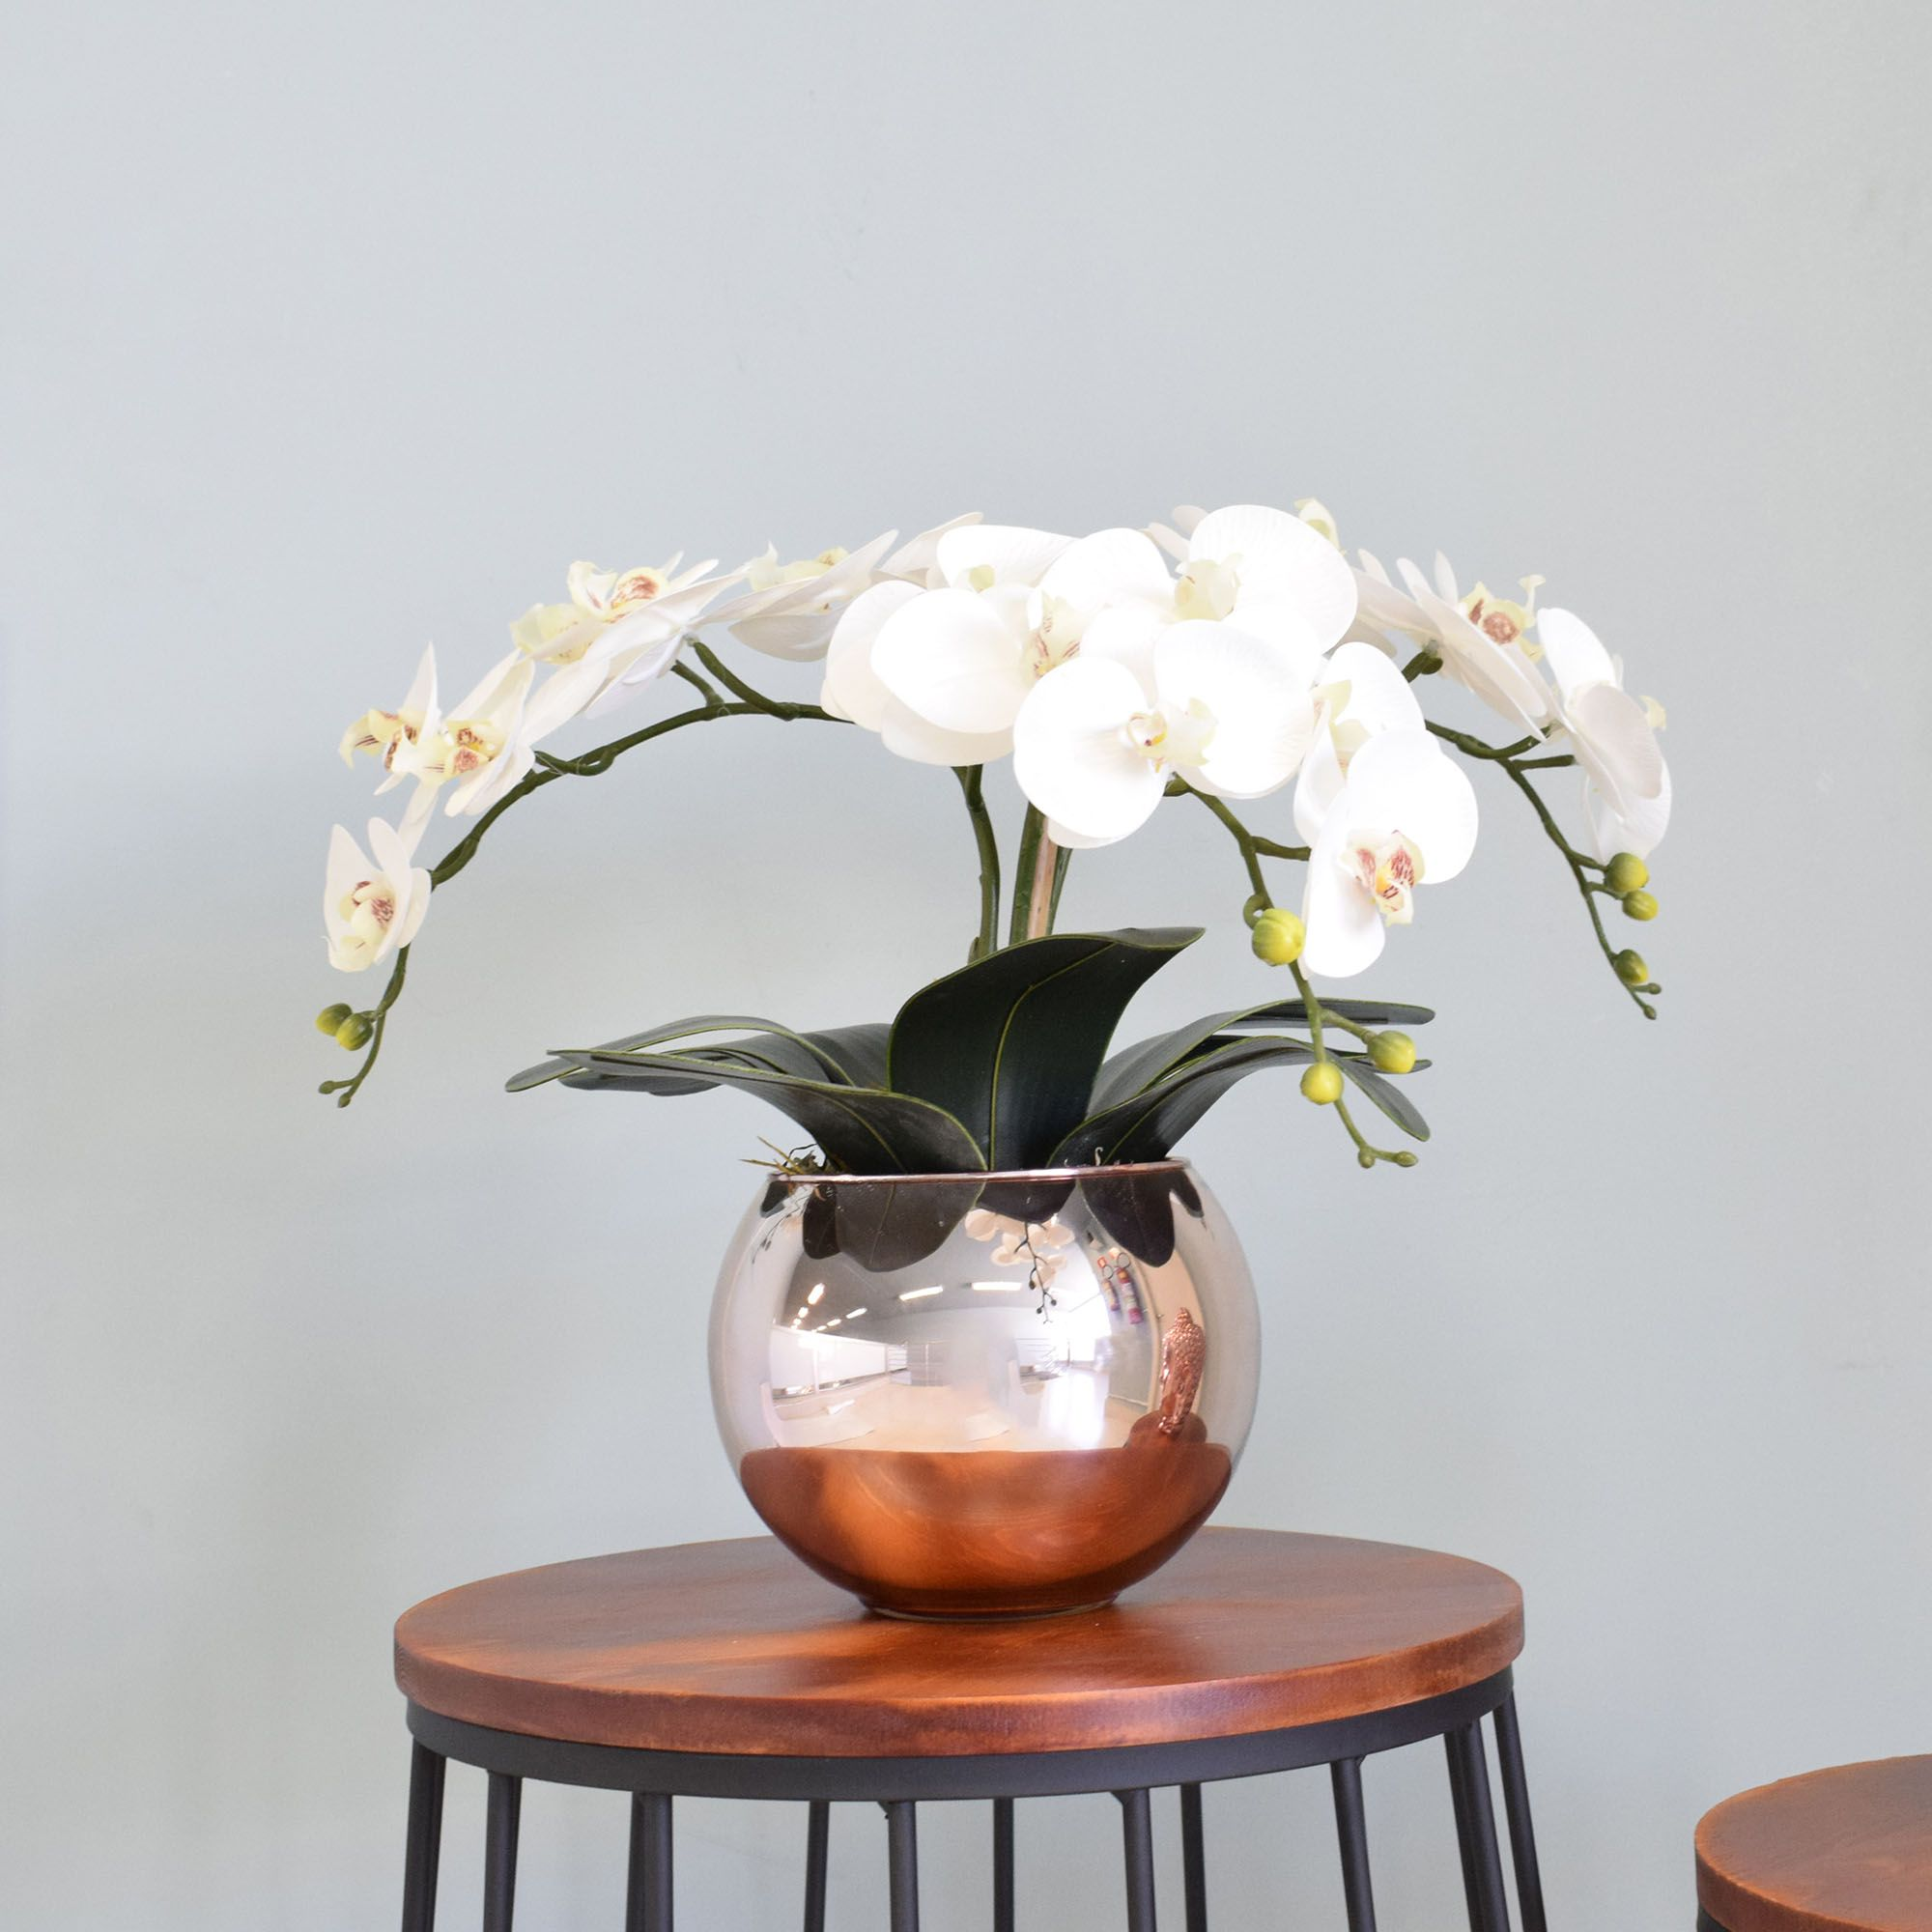 Arranjo de Orquídeas Branco Artificial no Vaso Rose Gold